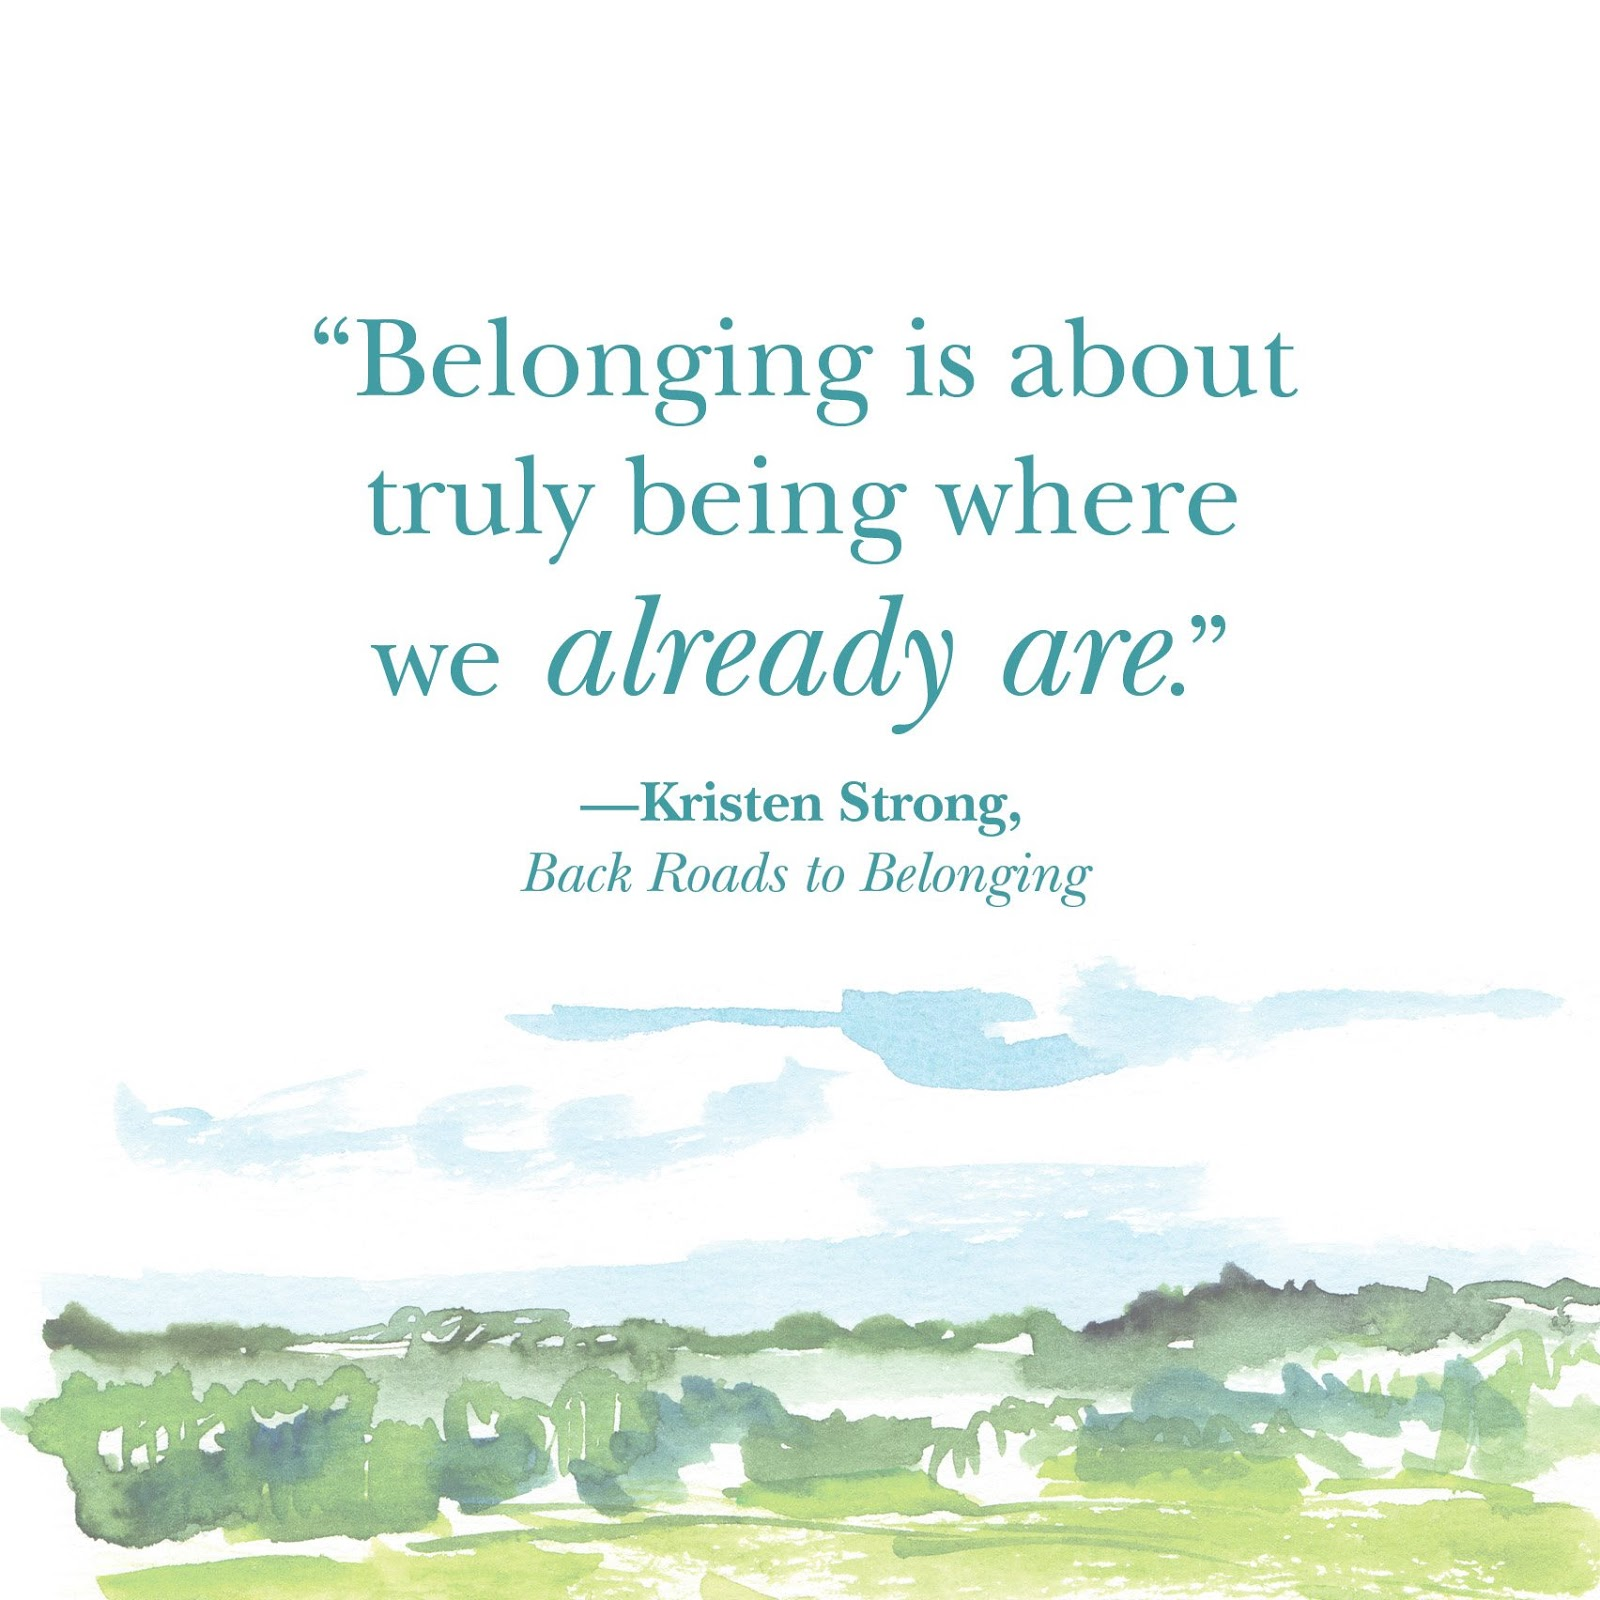 We All Want to Belong